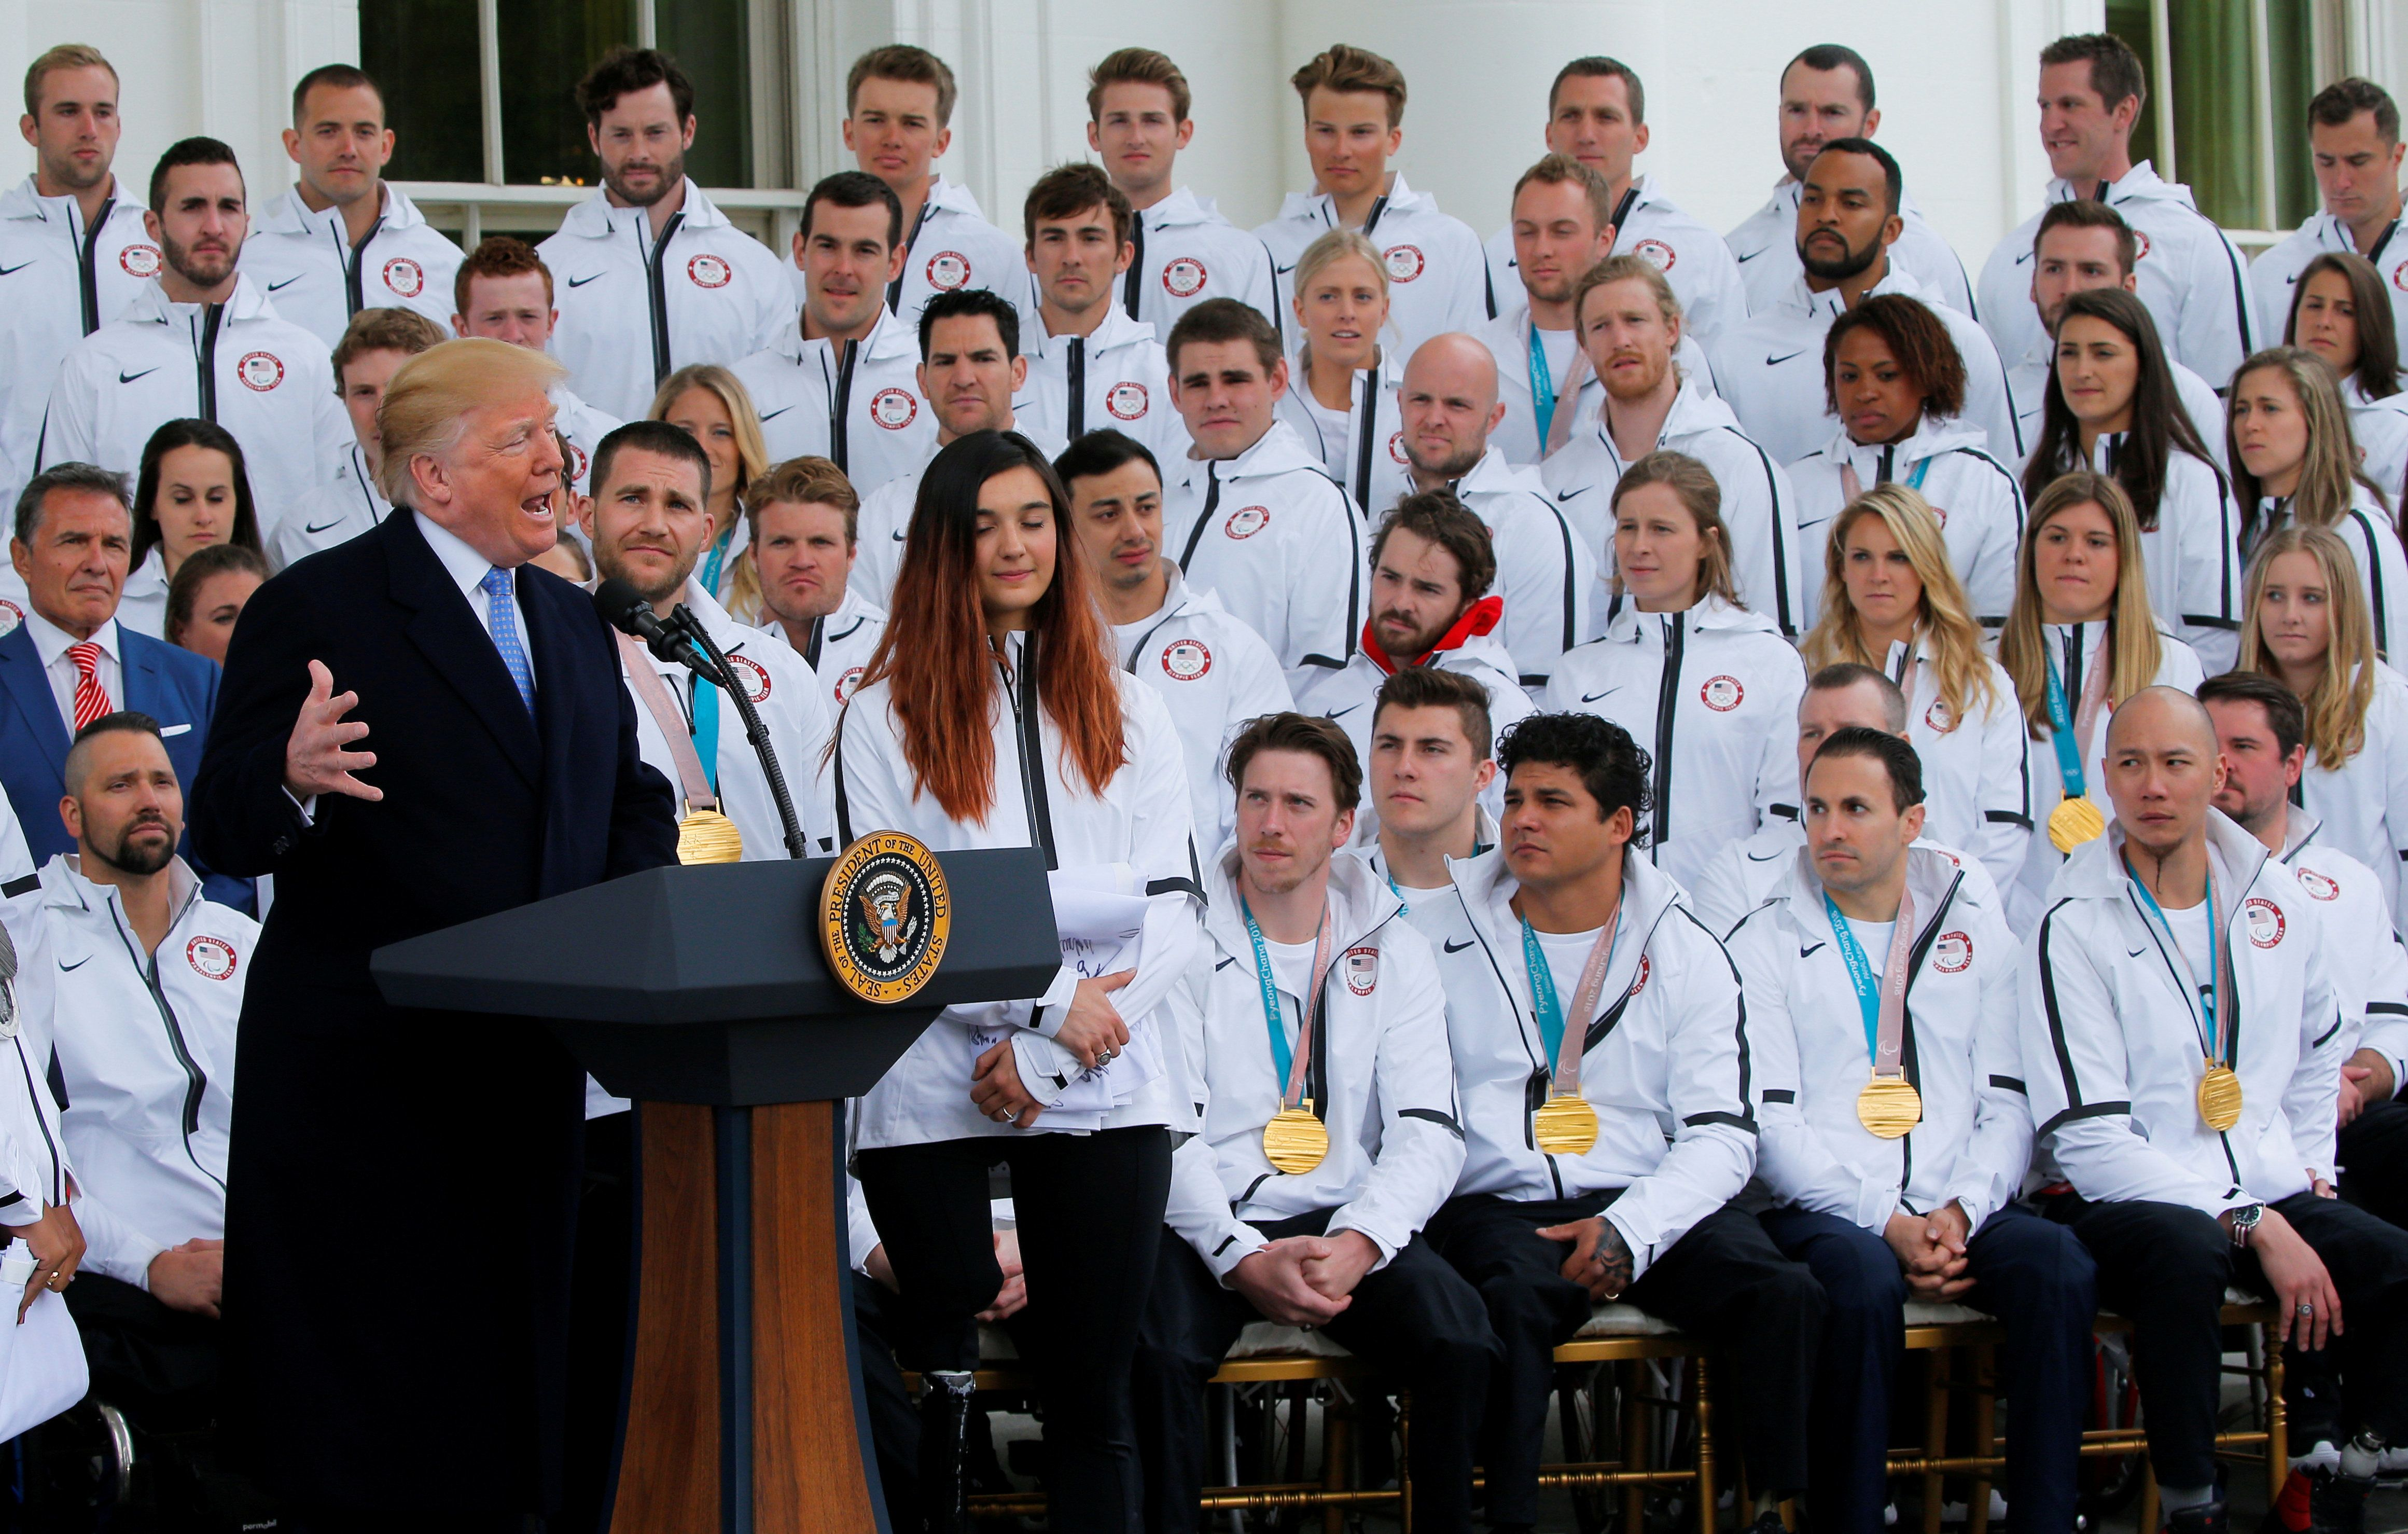 U.S. President Donald Trump gestures as he welcomes members of the 2018 U.S. Olympic and Paralympic teams to the White House in Washington, U.S., April 27, 2018. REUTERS/Brian Snyder